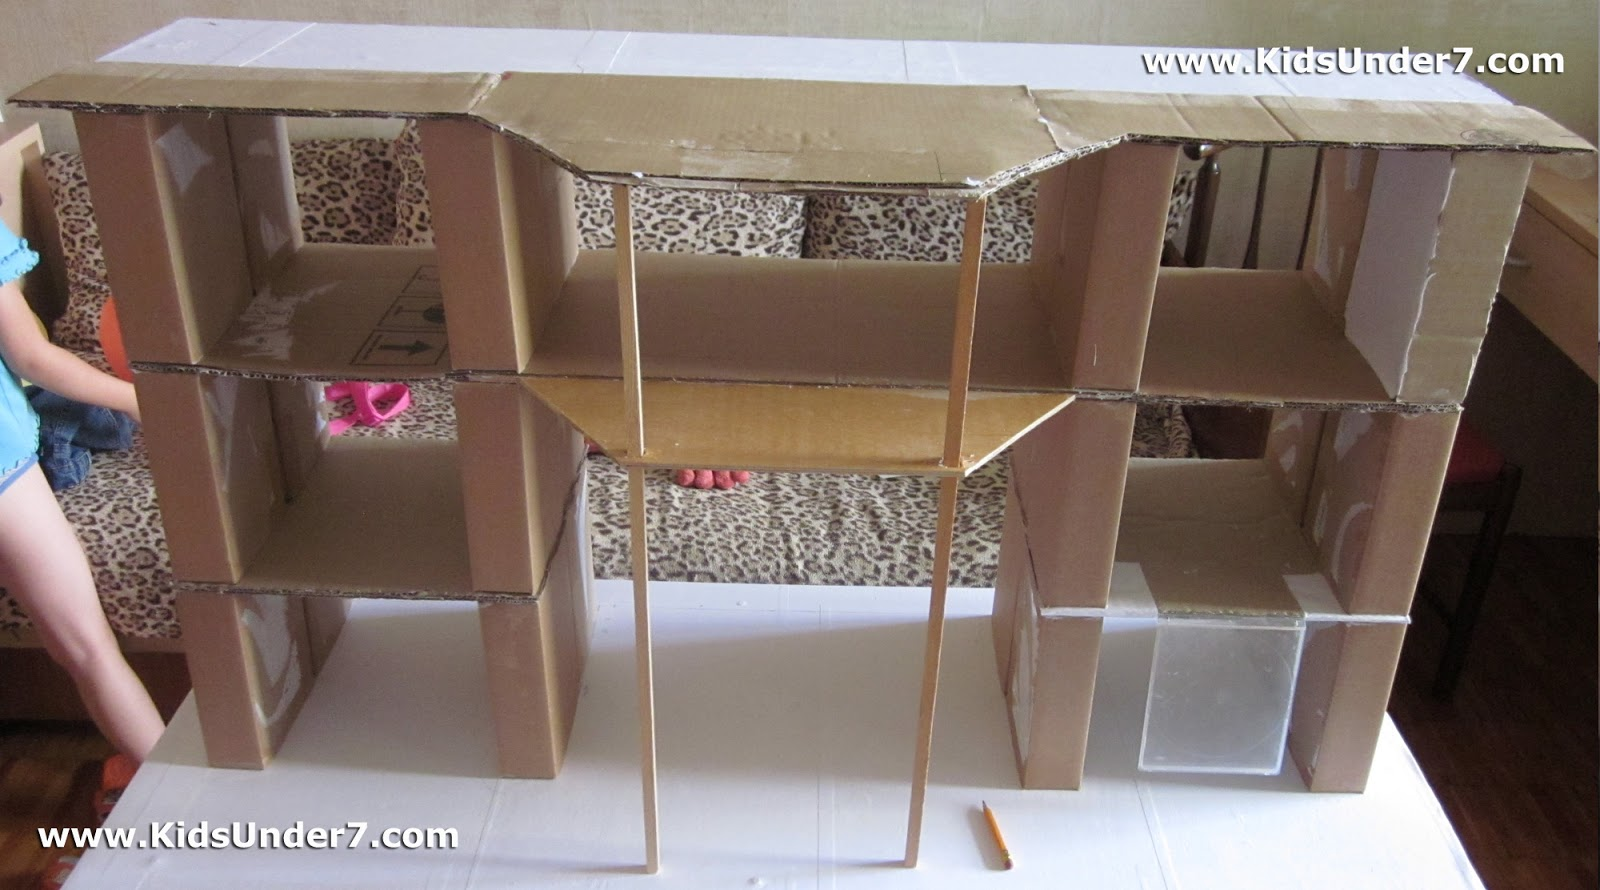 Kids Under 7 How To Make A Dollhouse Part 1 Doll House Wiring The For Lighting Of All Rooms We Conducted In Walls